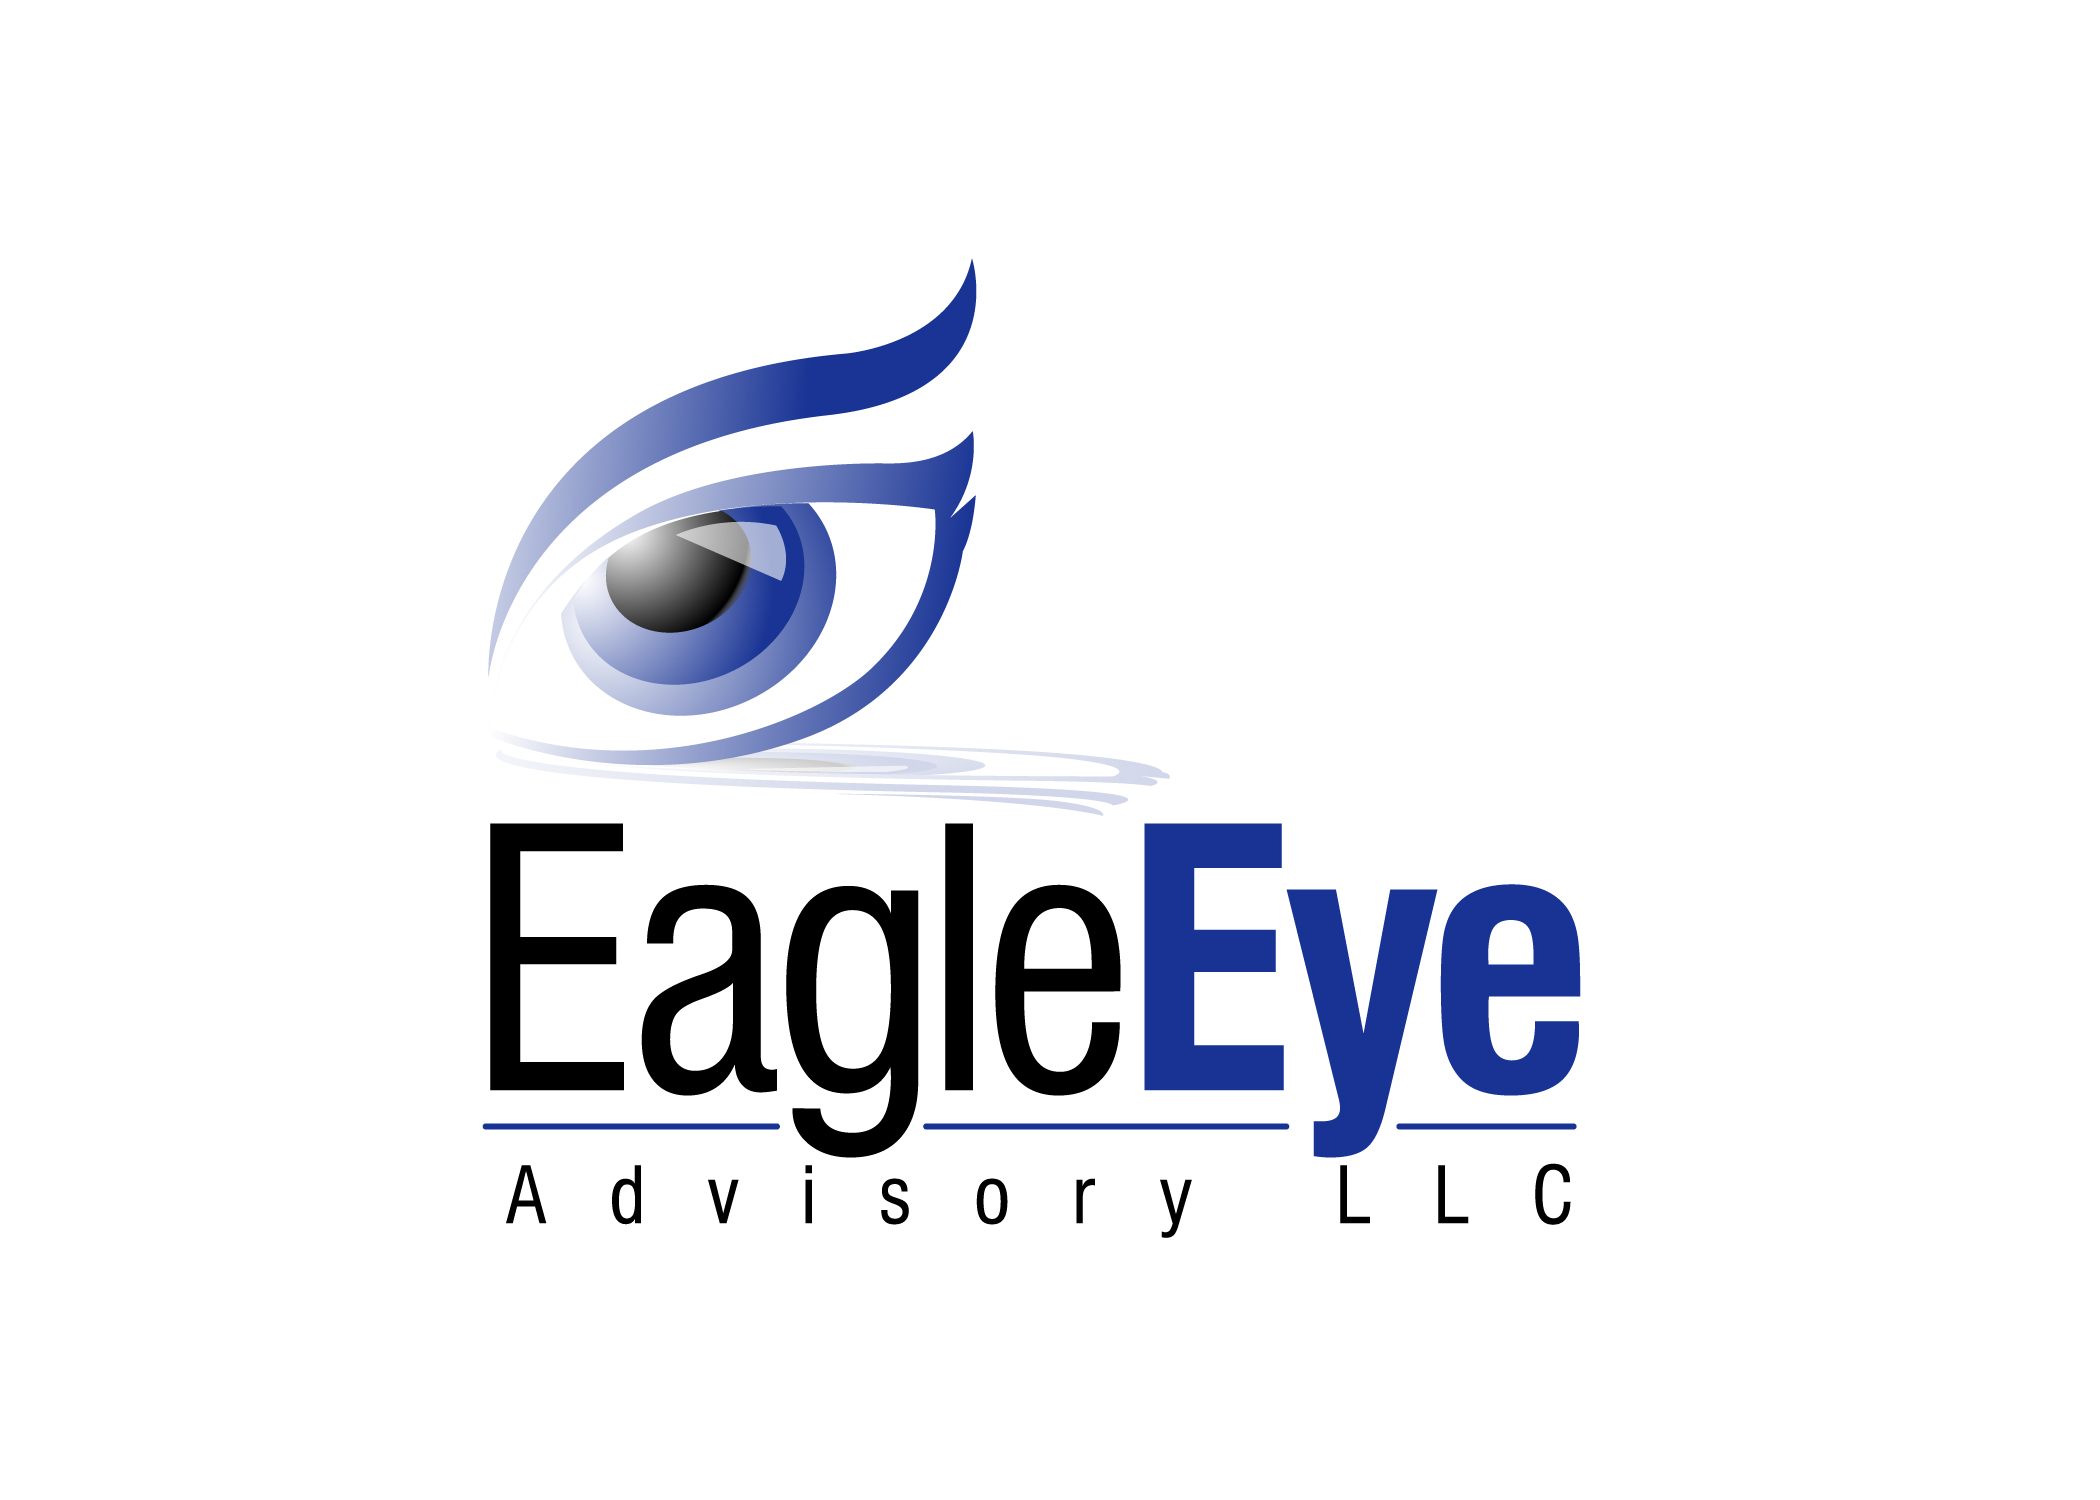 steve a schaefer at eagle eye advisory llc wealthminder steve schaefer crd 5085596 is an investment advisor representative working at eagle eye advisory llc in lewis center oh and has over 11 years of